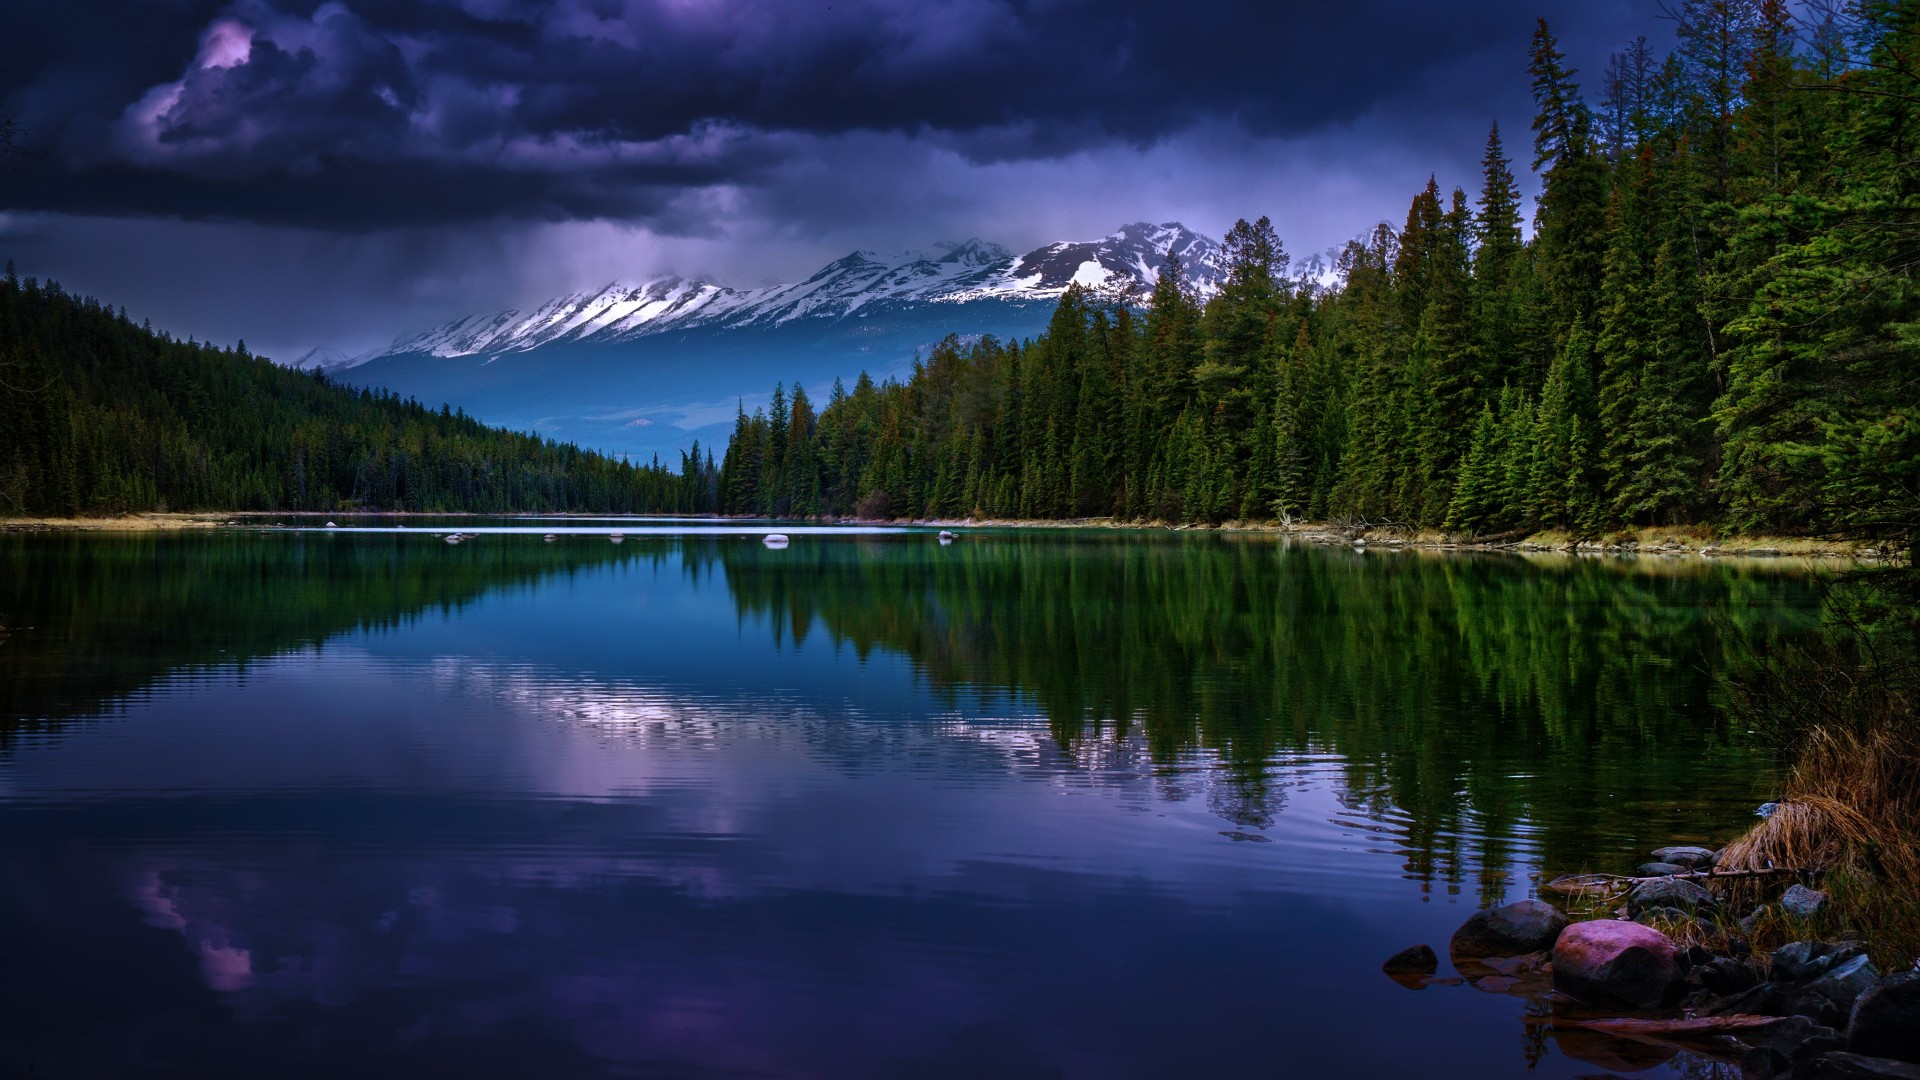 First Lake, Alberta, Canada Wallpaper for Desktop 1920x1080